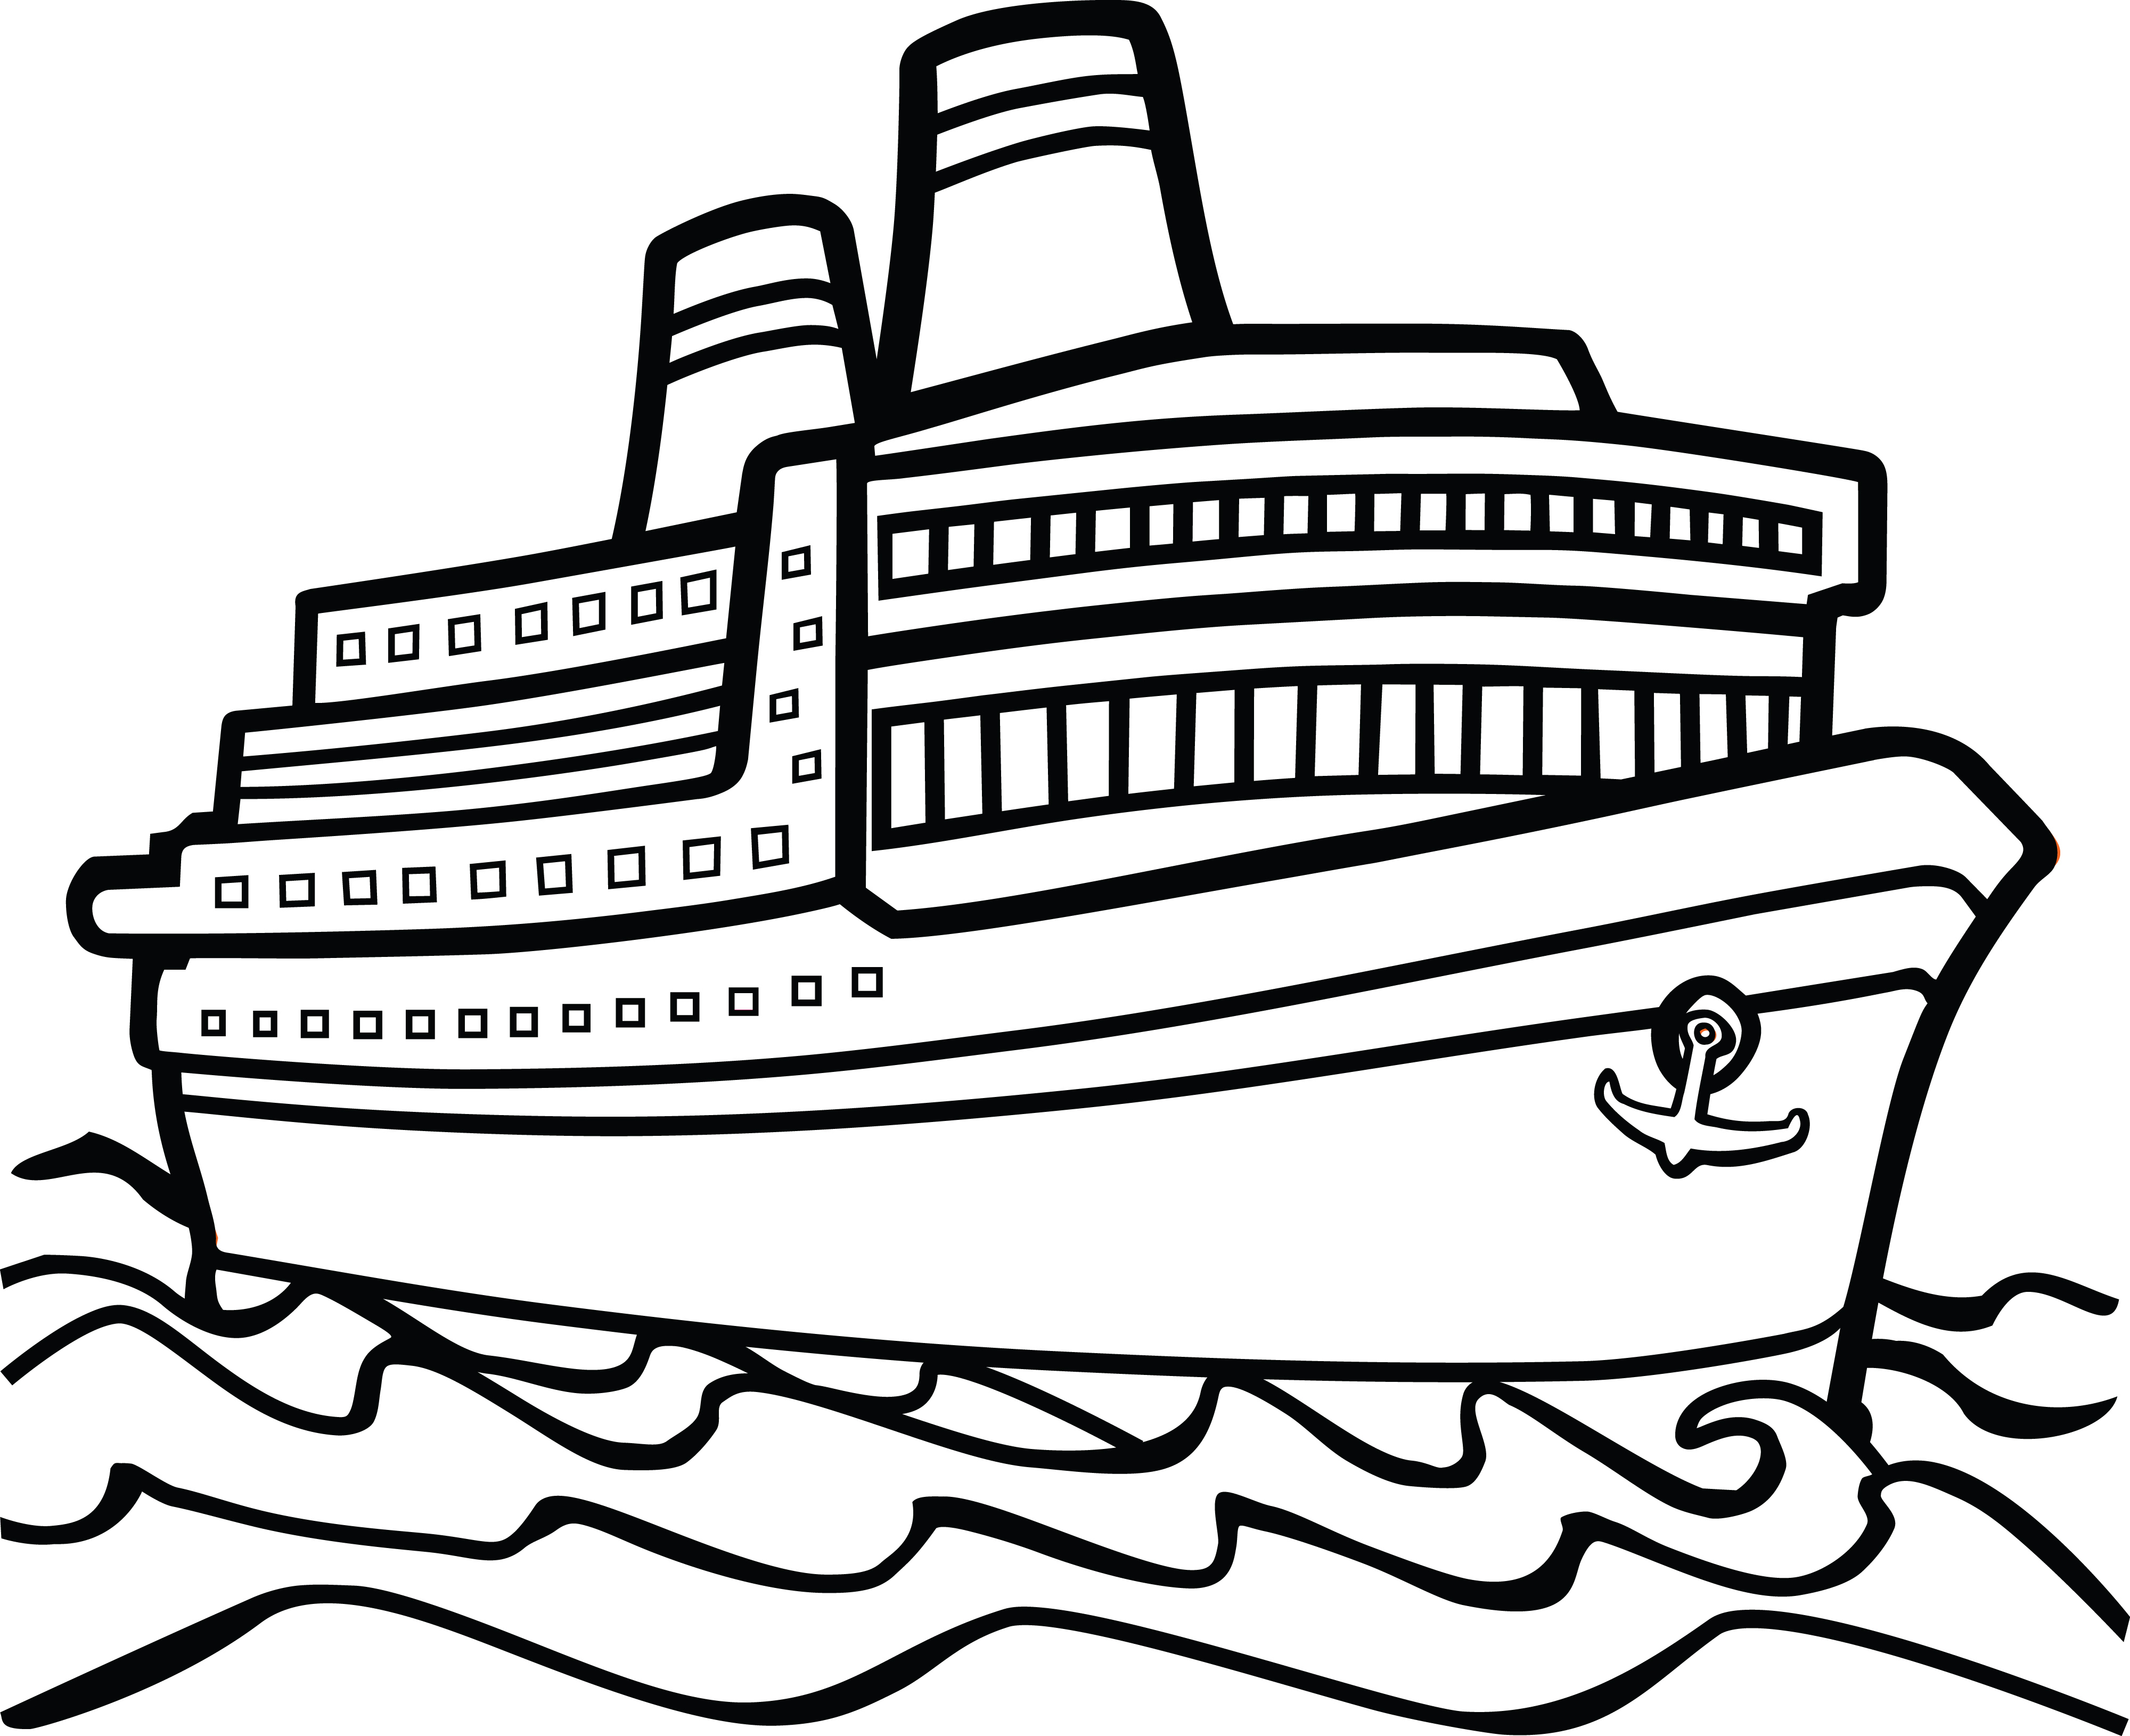 free clipart of a cruise boat tugboat clipart free black and white tugboat clipart free black and white